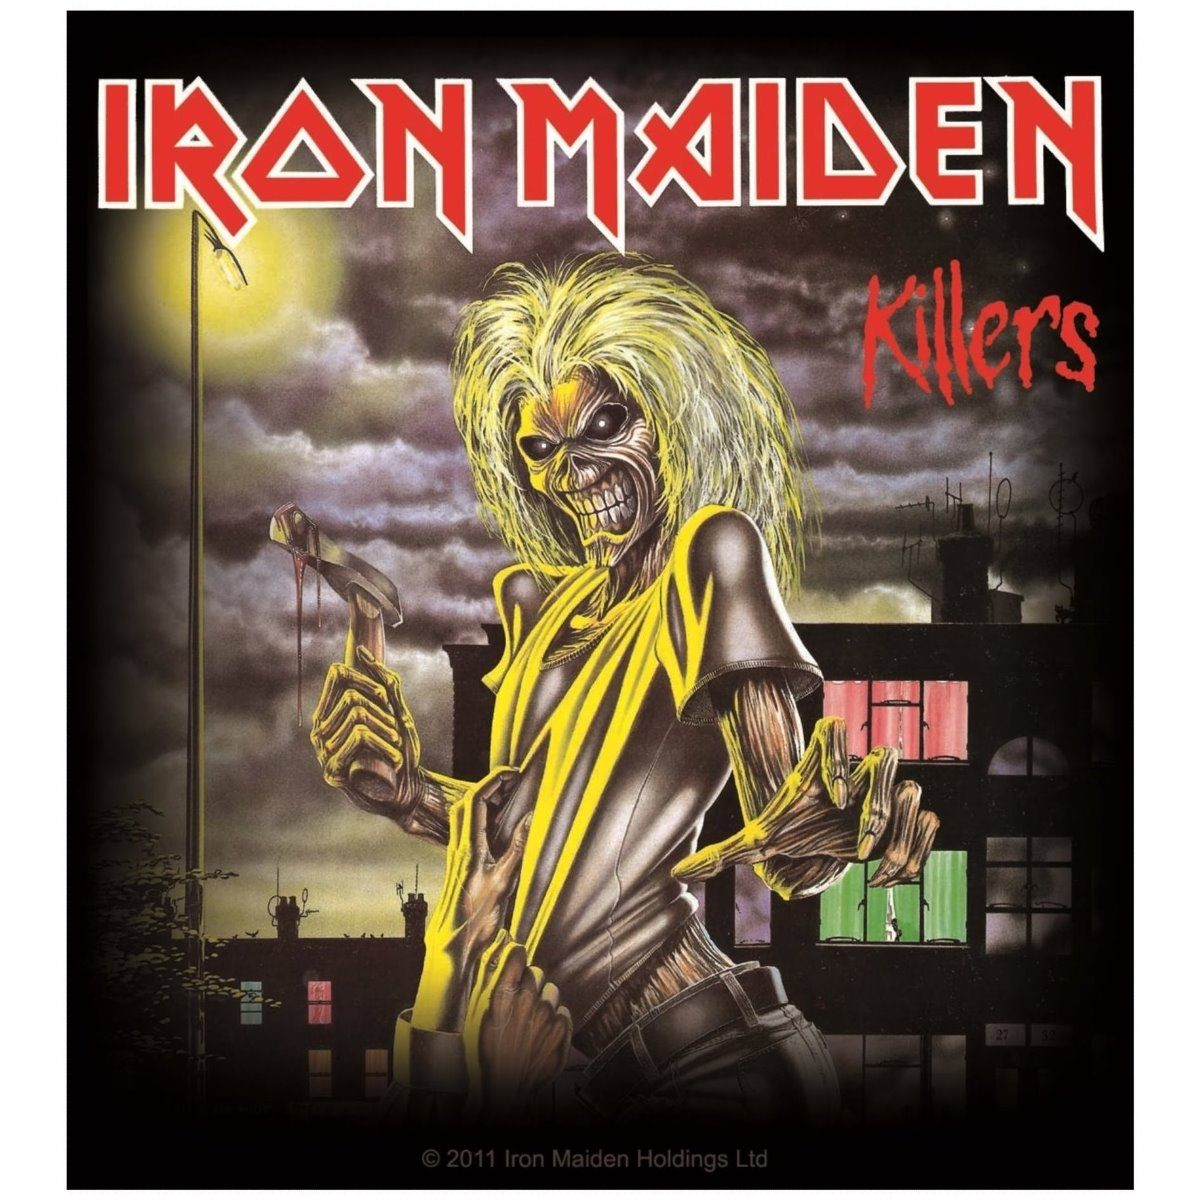 Iron Maiden - Killers beatit.tv